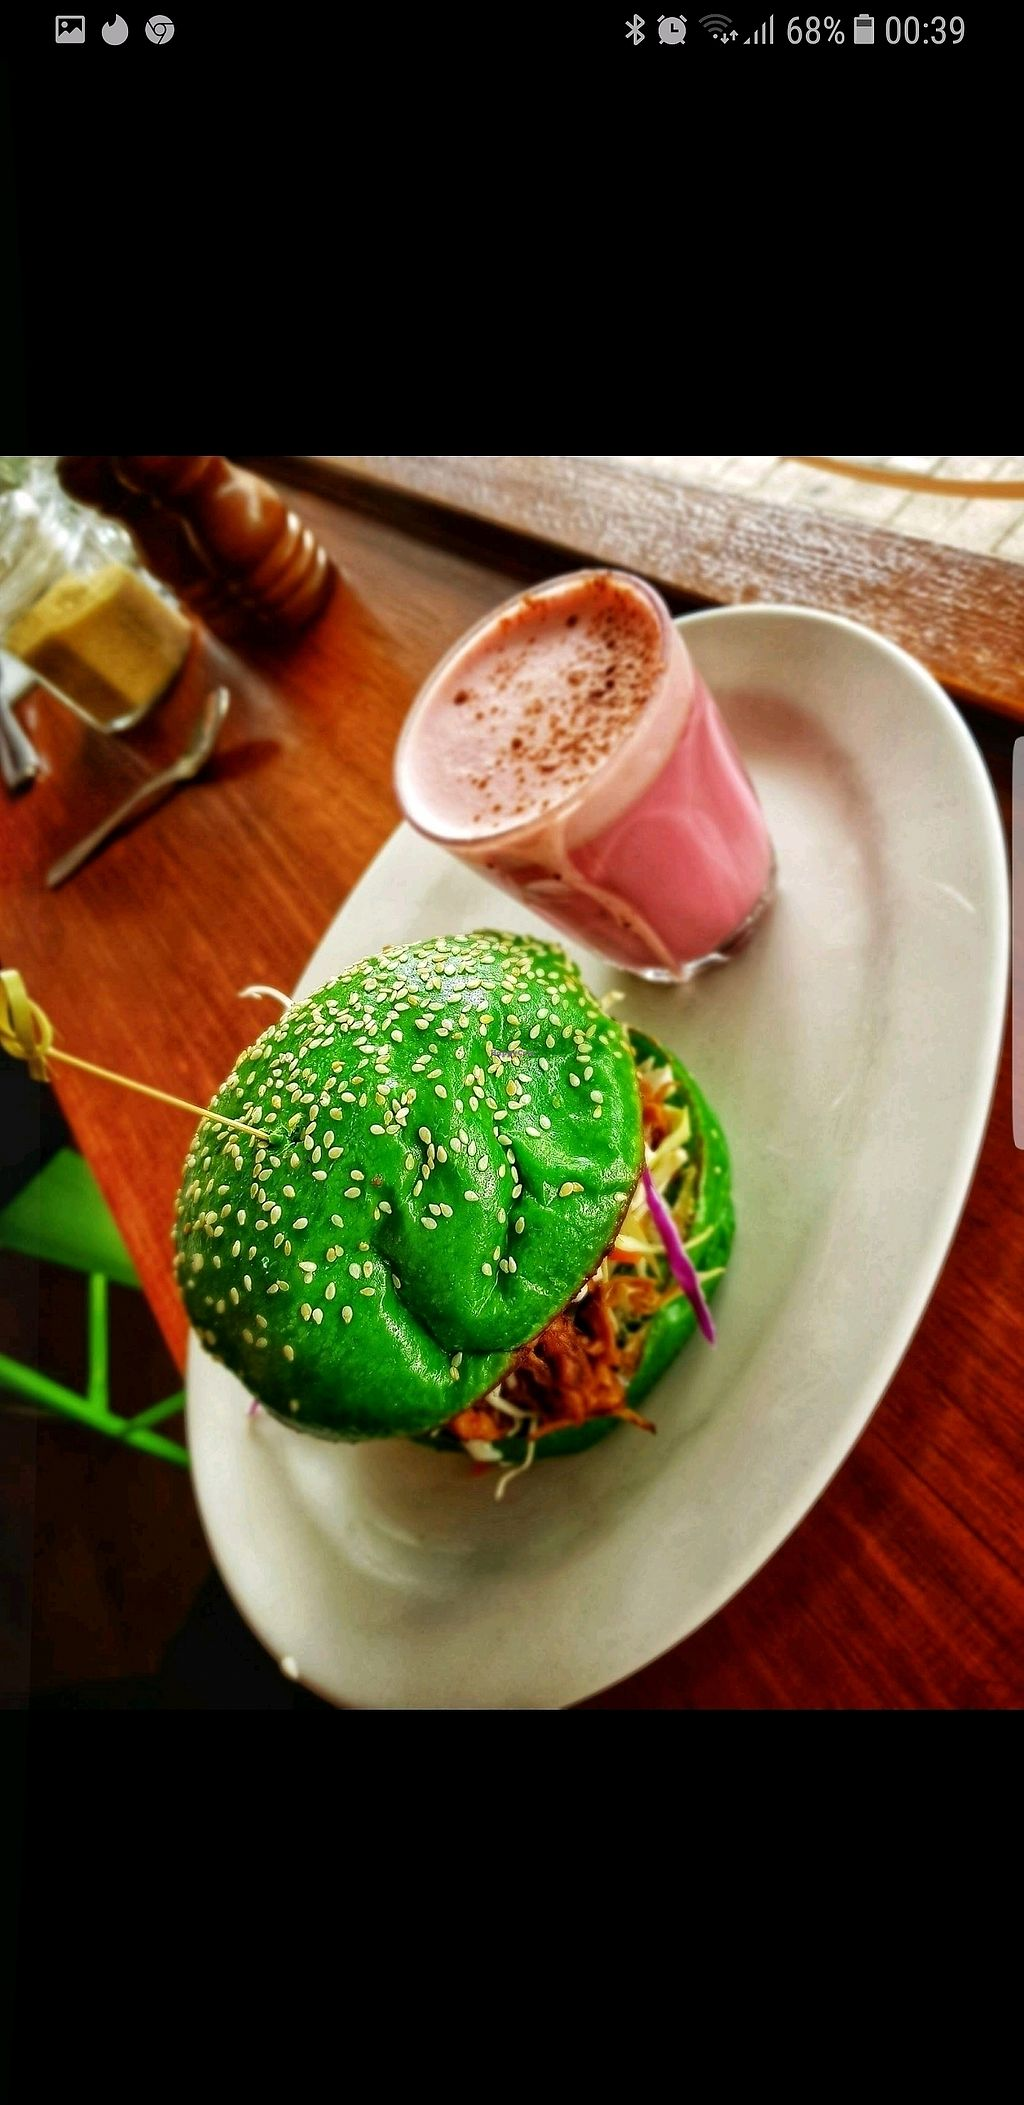 "Photo of Nature Cafe/Bar  by <a href=""/members/profile/vicinaus"">vicinaus</a> <br/>Pulled Jack Fruit burger and Beetroot Latte.. both delicious. ☺  <br/> November 26, 2017  - <a href='/contact/abuse/image/104563/329222'>Report</a>"